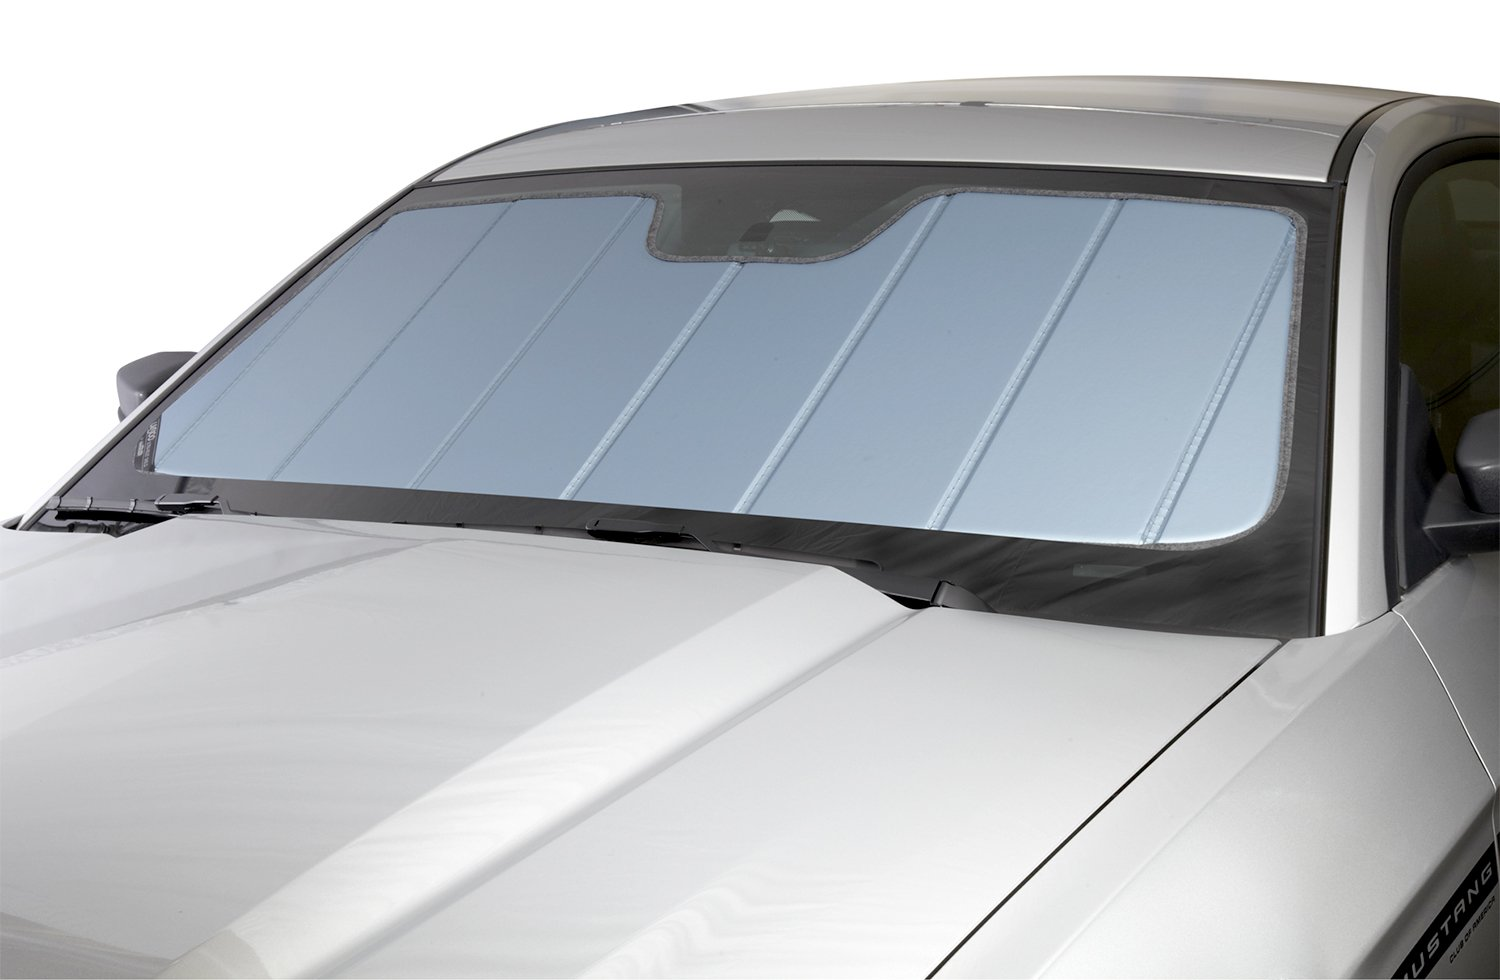 Image result for sun shield car